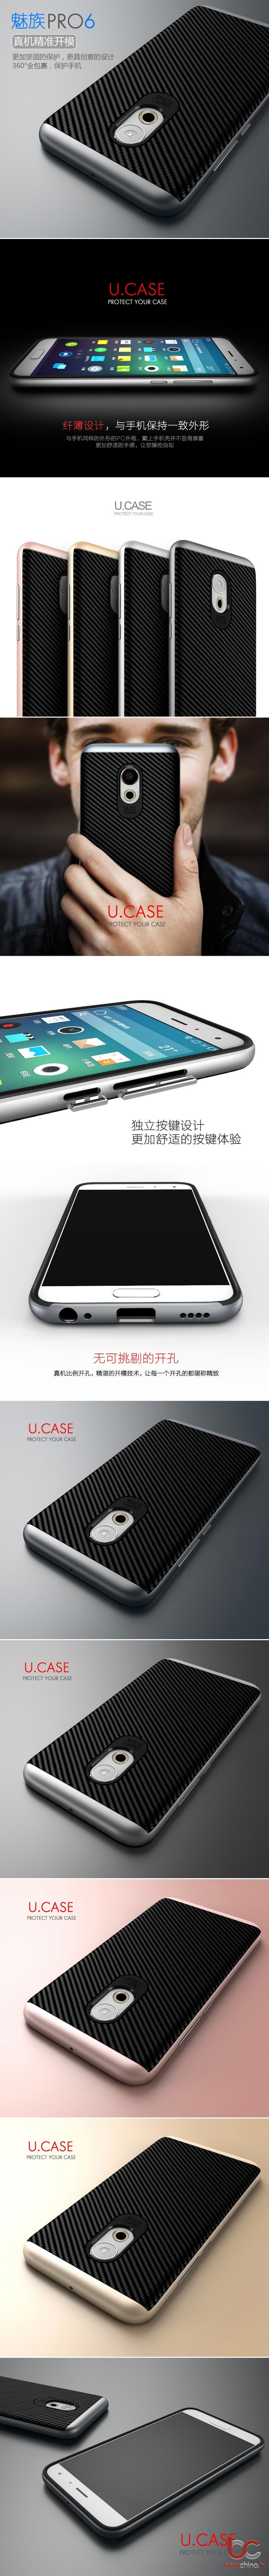 Meizu Pro 6 iPaky Back Cover (2)